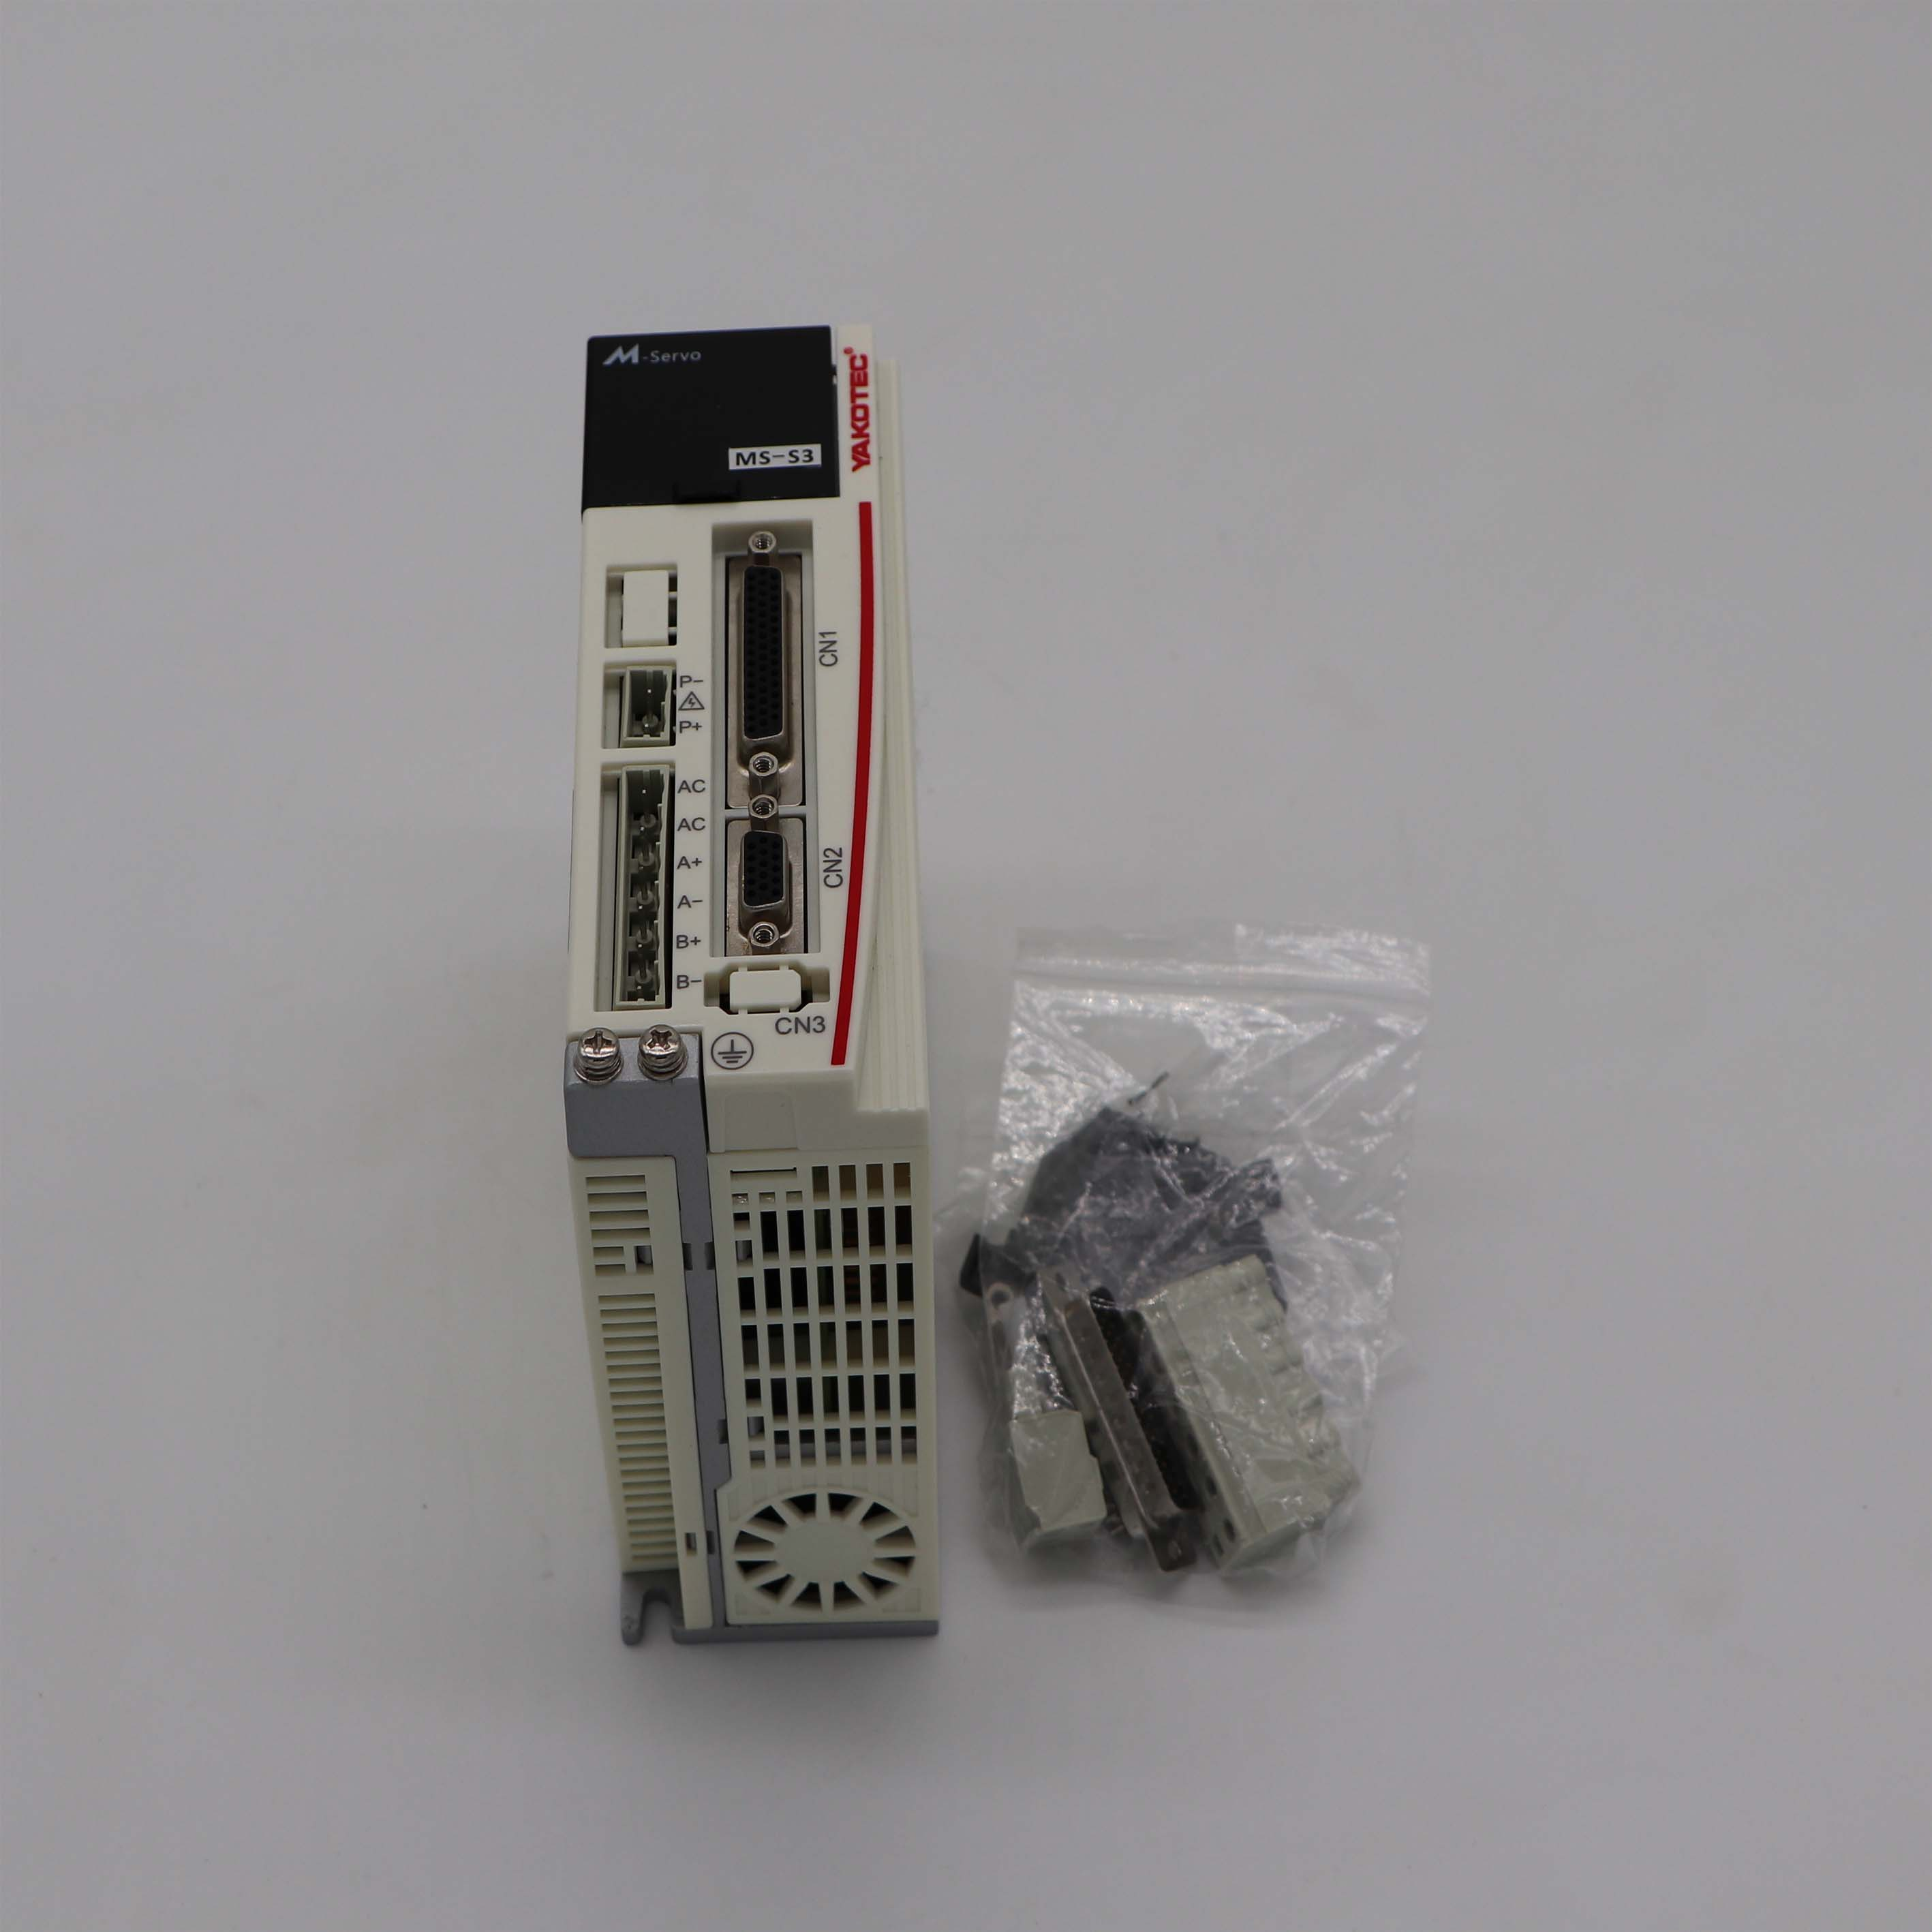 Yako Closed Loop Step Servo Driver MS - S3 Used For YK286EC118A1